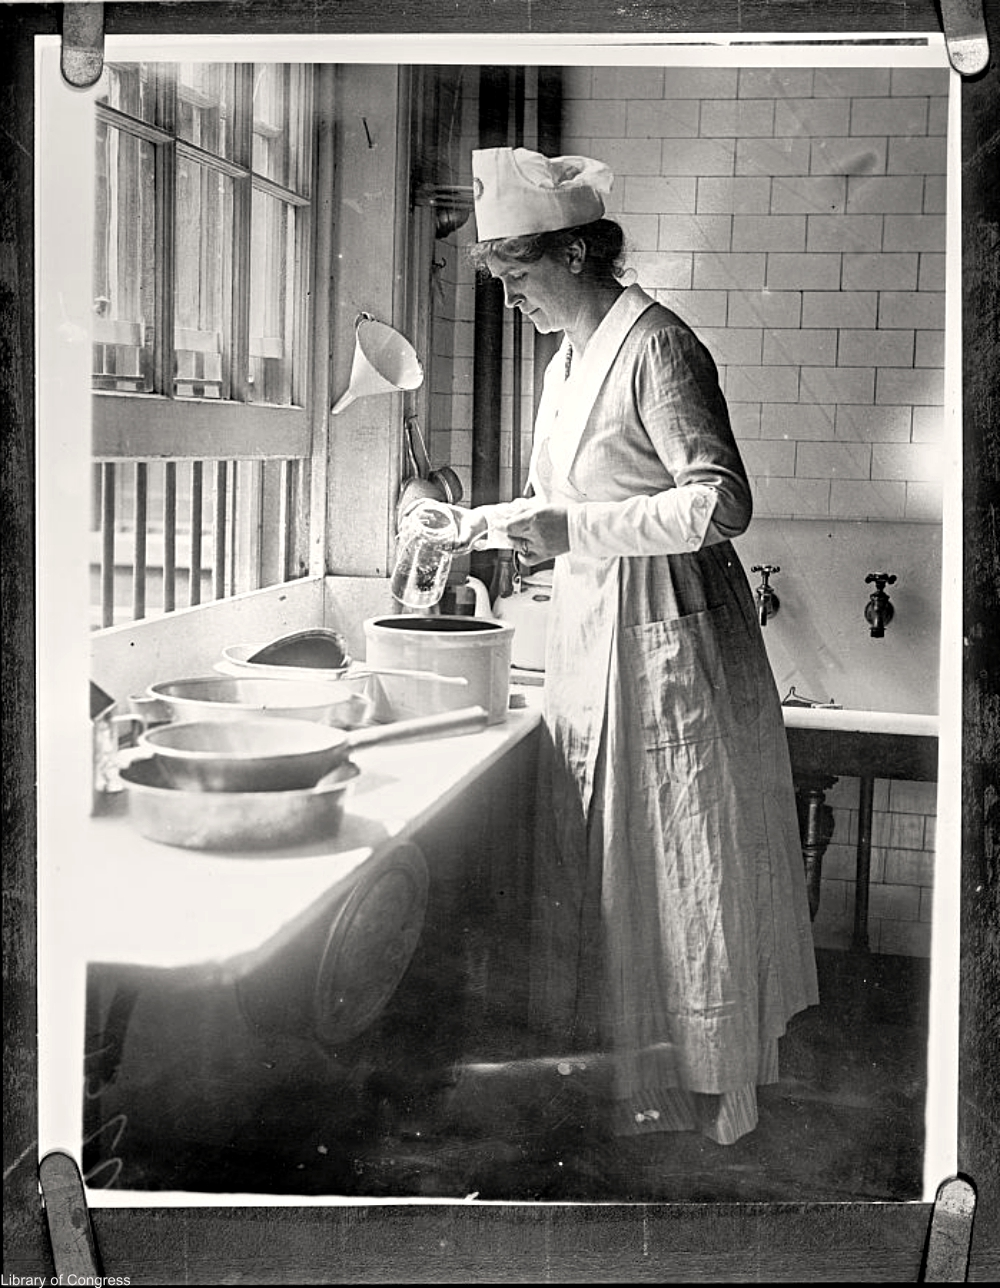 United States Food Administration worker WWI era